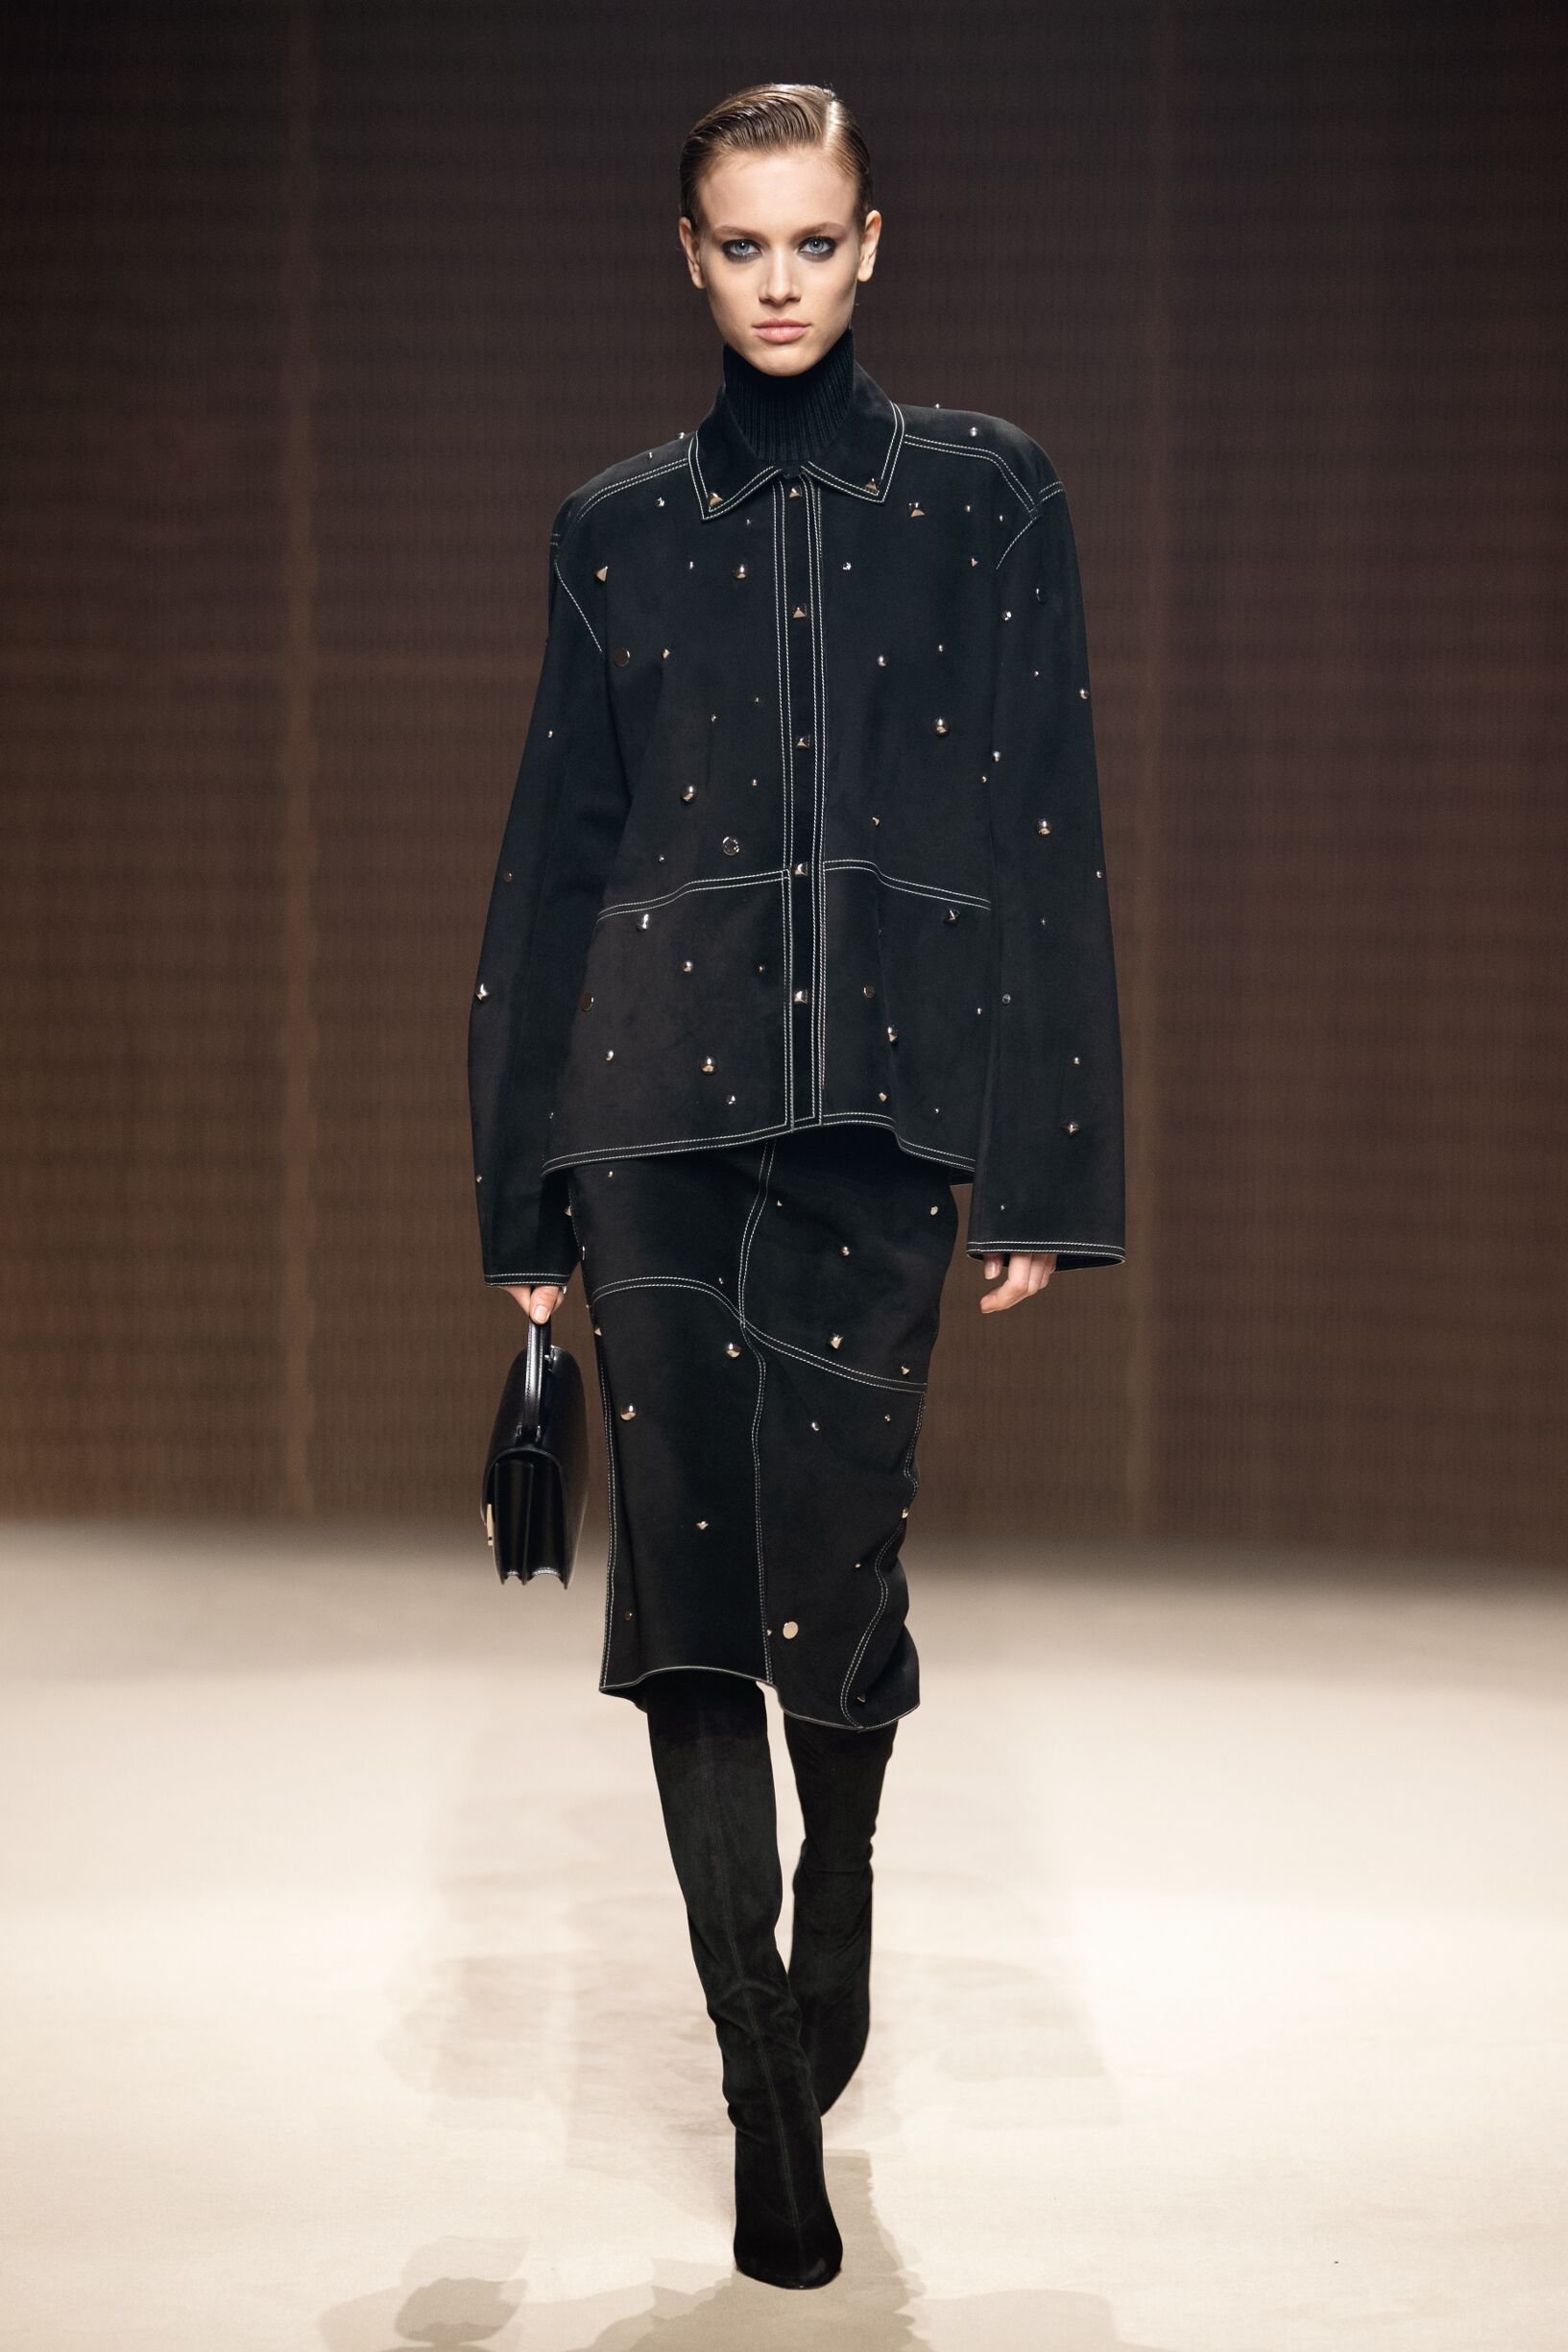 Hermès Fashion Show FW 2019